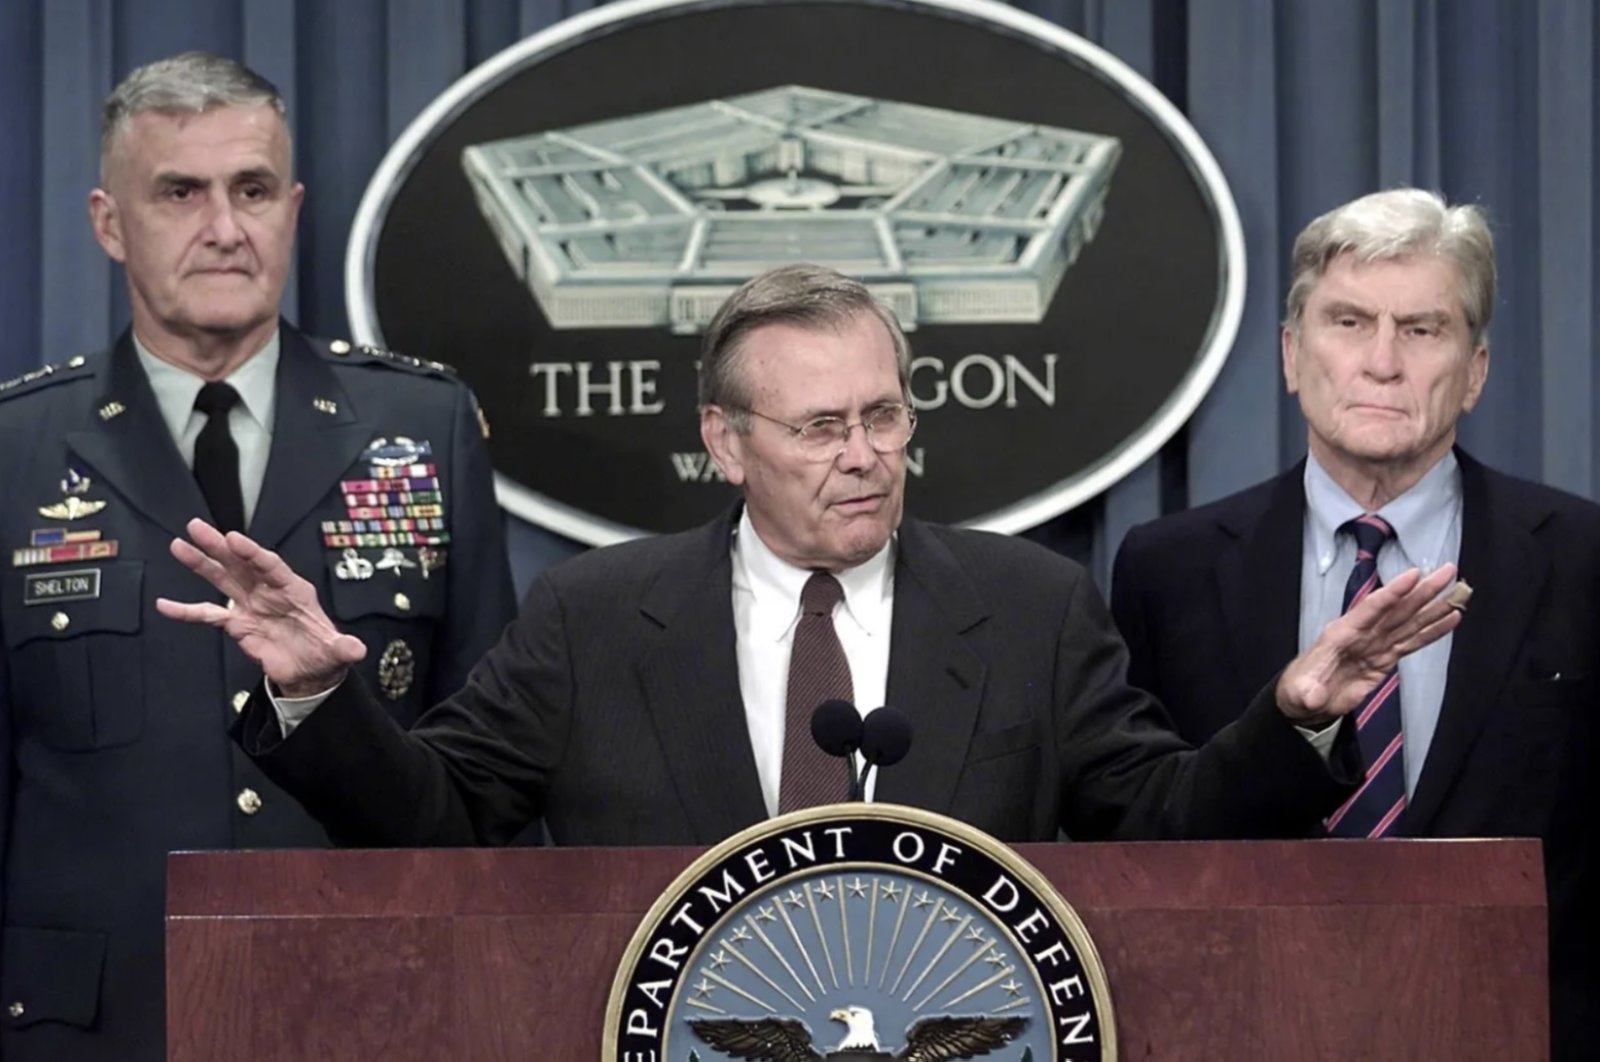 Then-Secretary of Defense Donald Rumsfeld (C) speaks during a press conference held jointly with former U.S. Joint Chief of Staff General Hugh Shelton (L) and former U.S. Senator John Warner (R) after terrorists attacked the World Trade Center and Pentagon, Washington, D.C., U.S. Sept. 11, 2001. (AFP File Photo)